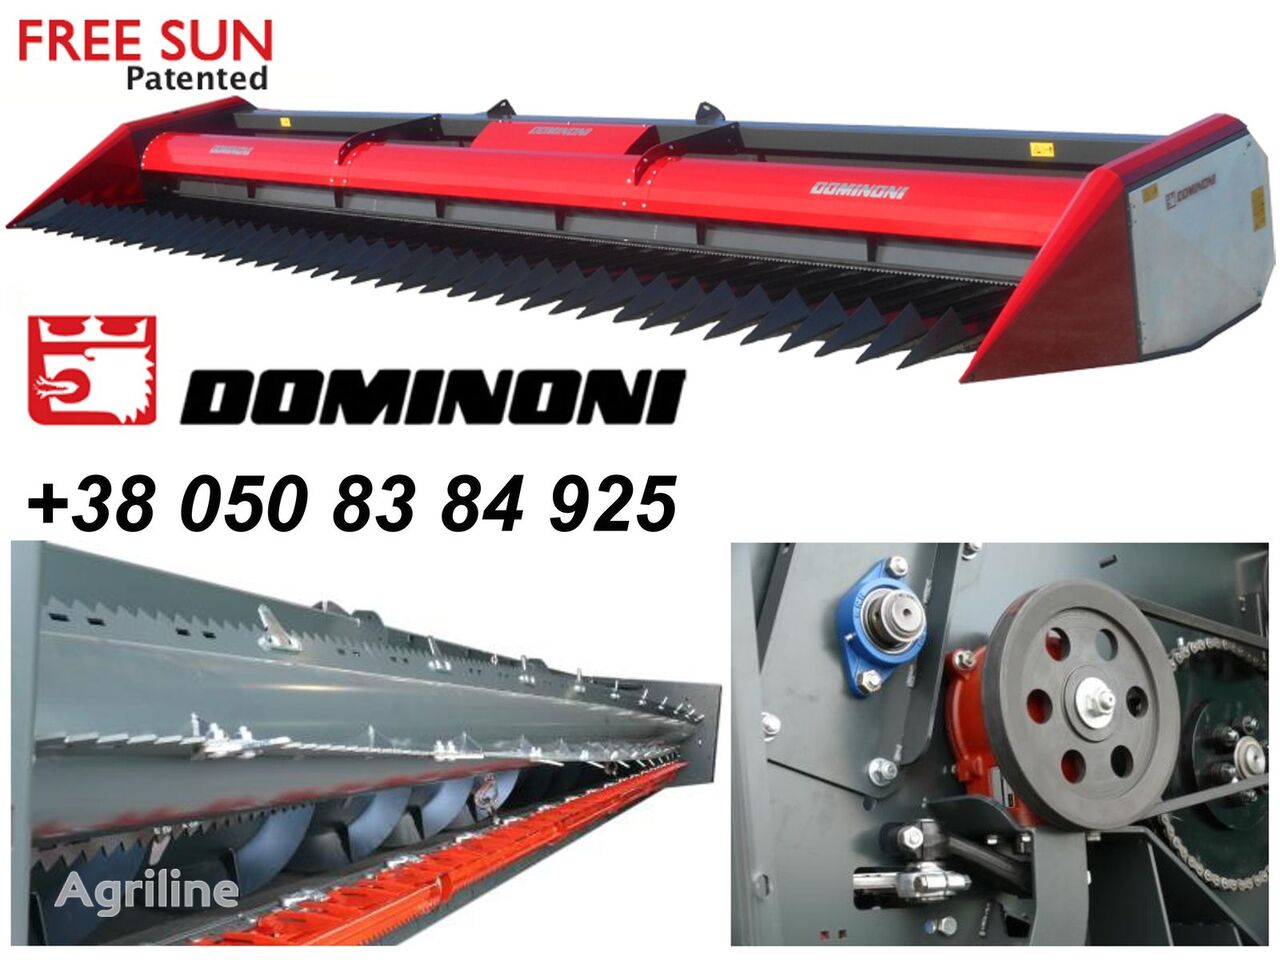 new Dominoni Free sun GF620 sunflower header